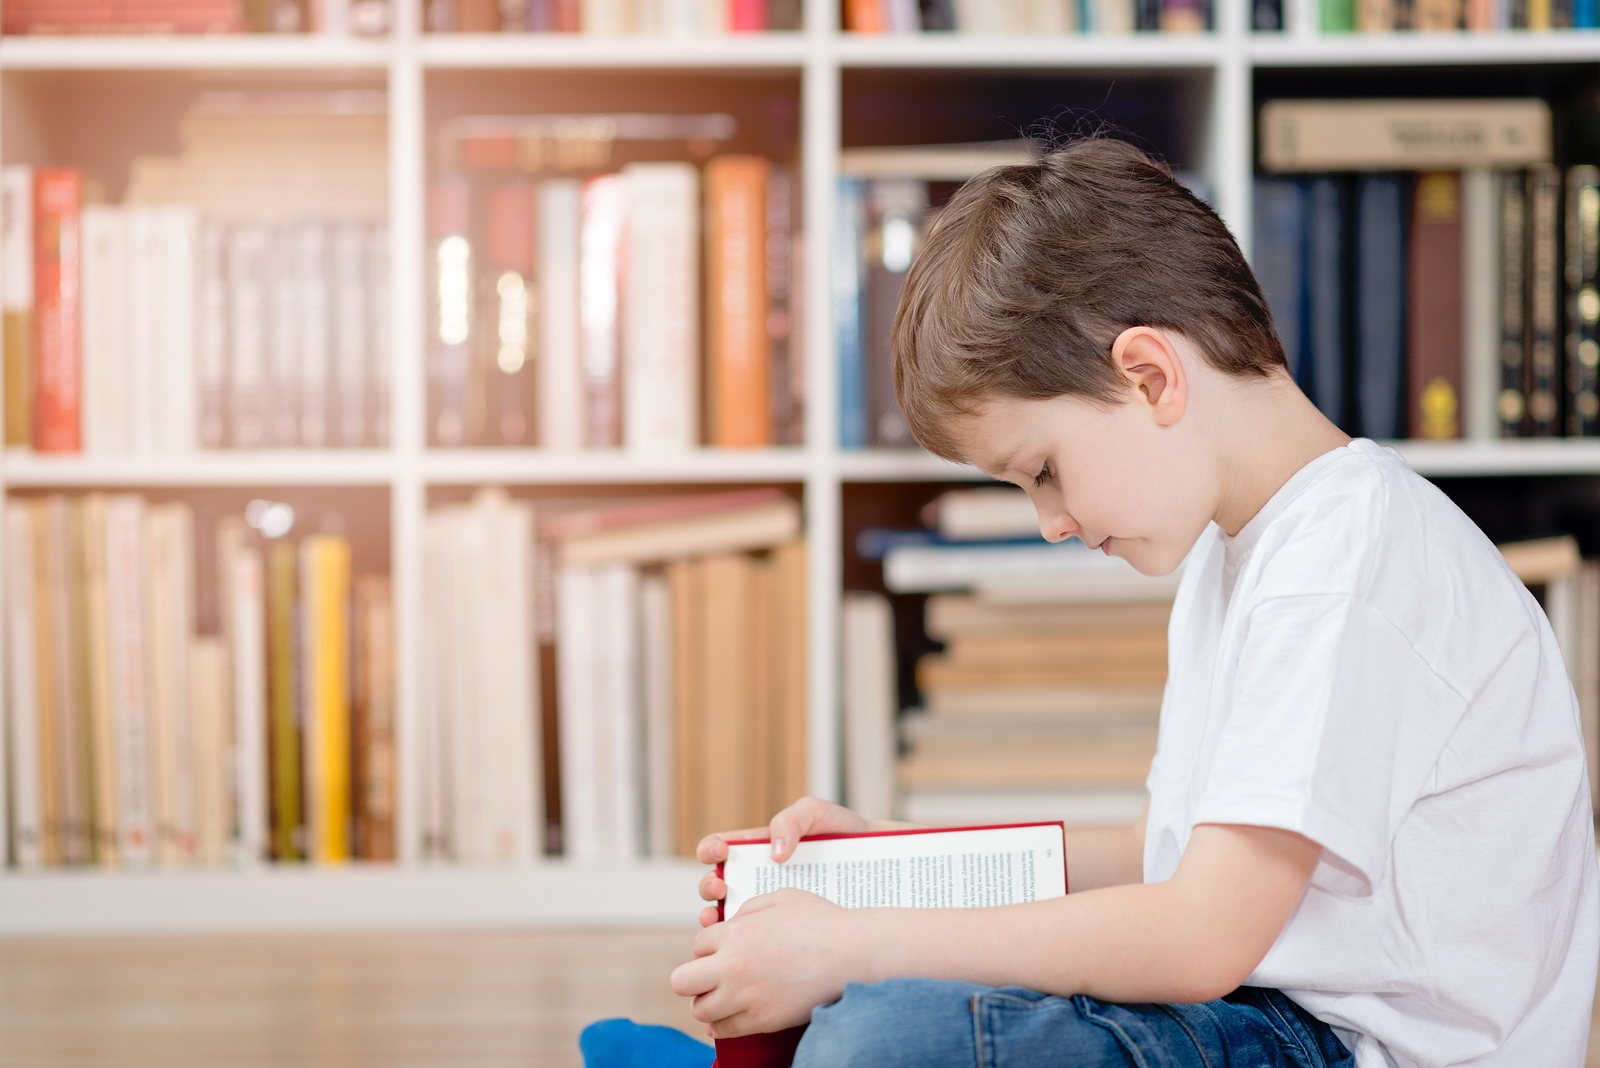 Expanding your child's reading tastes | TheSchoolRun